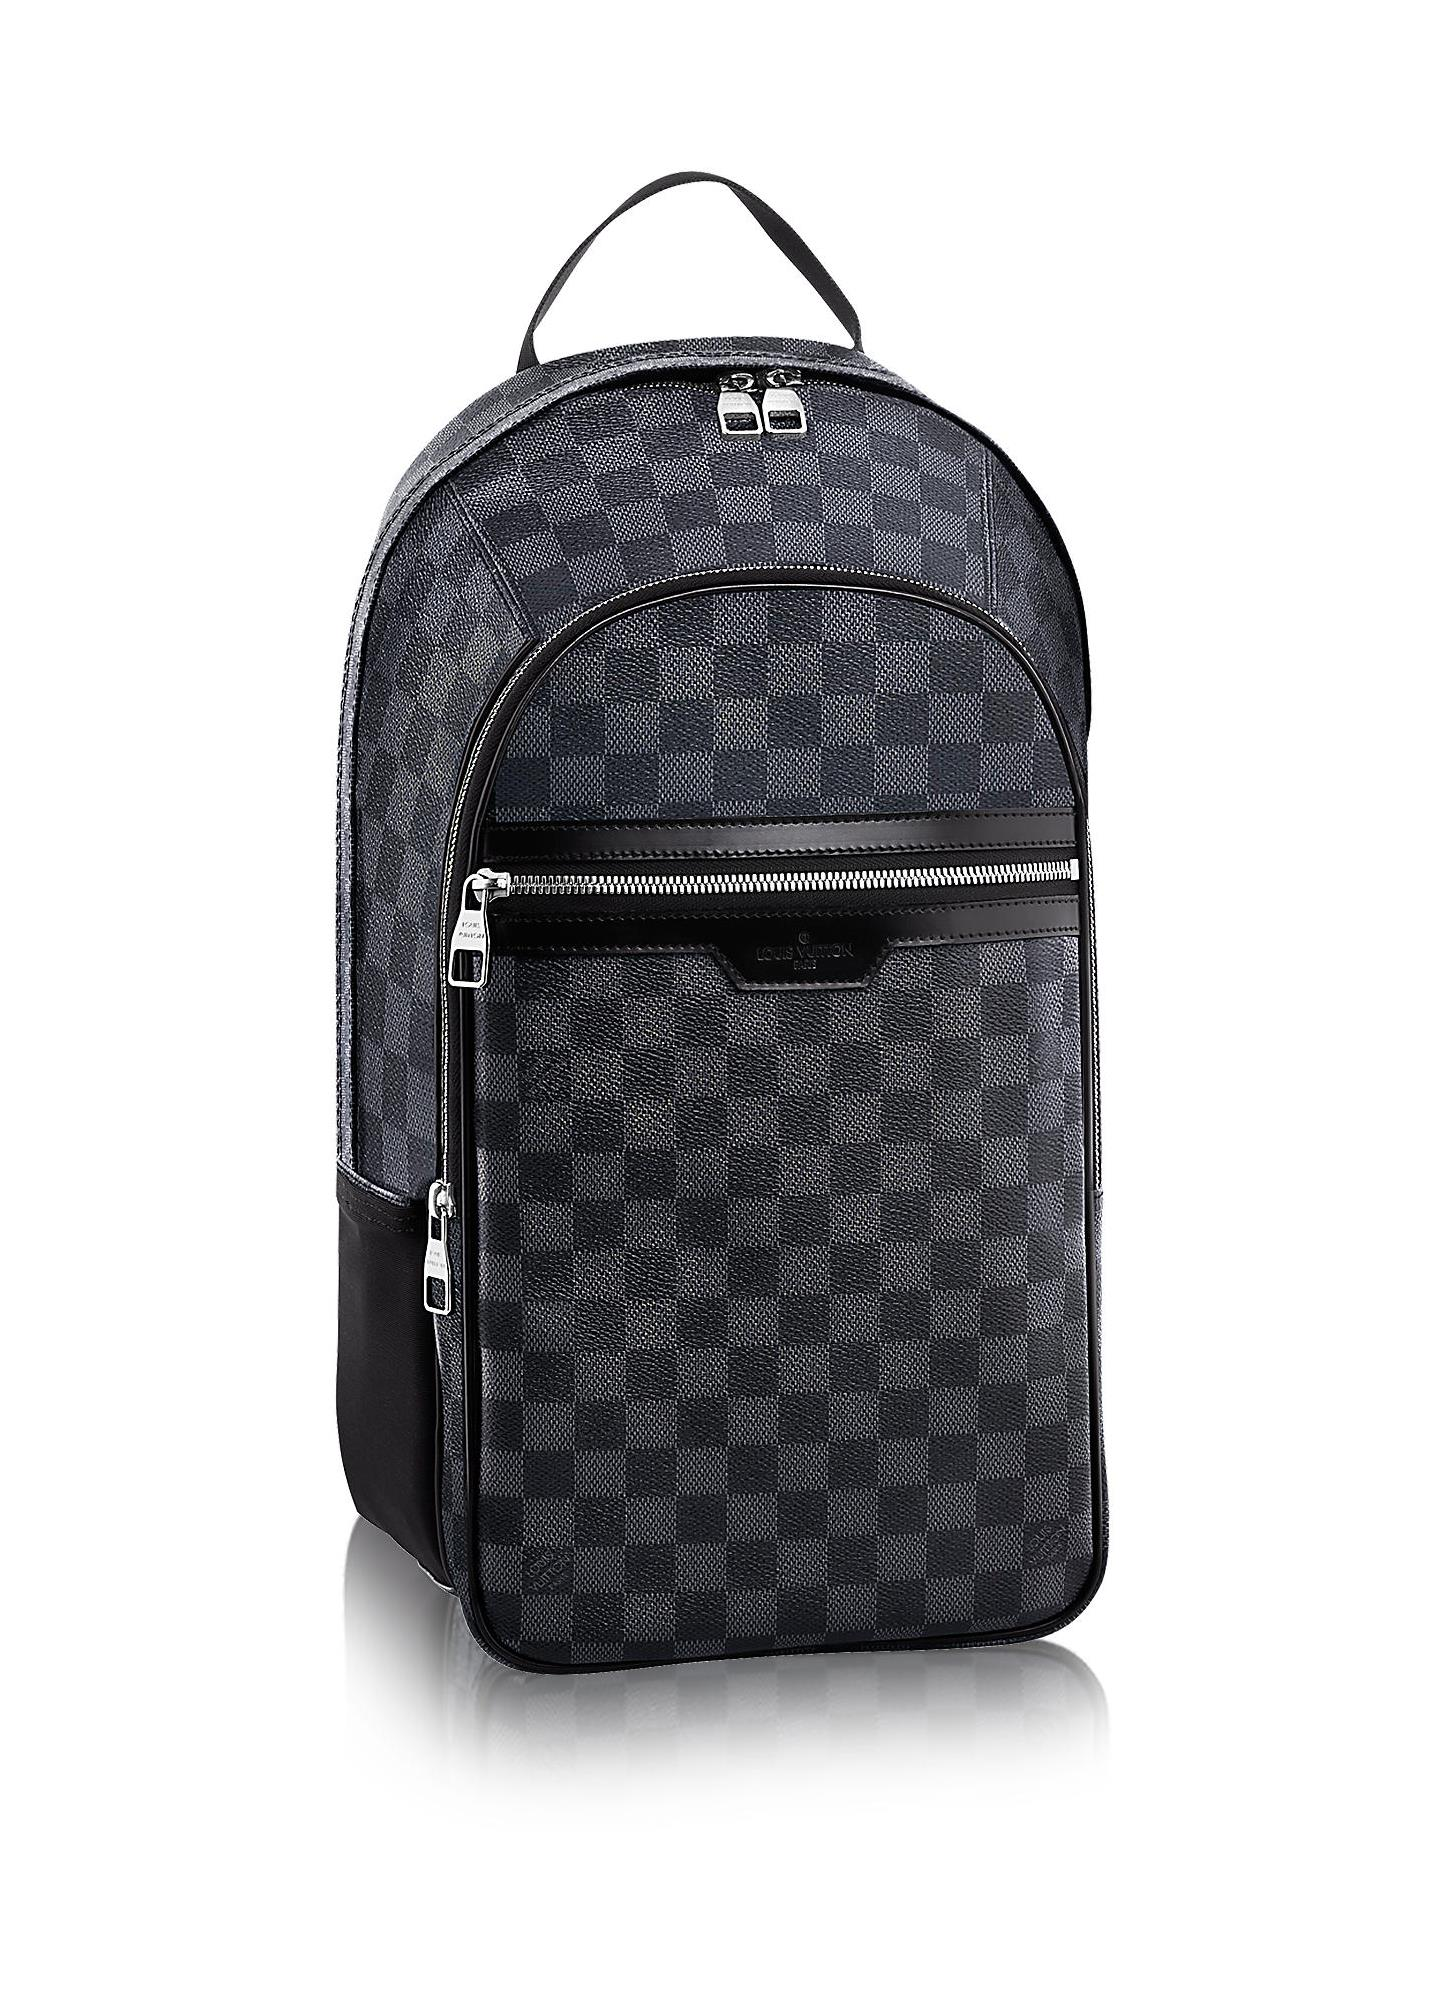 7b7ca7454230 рюкзак louis vuitton4 ...